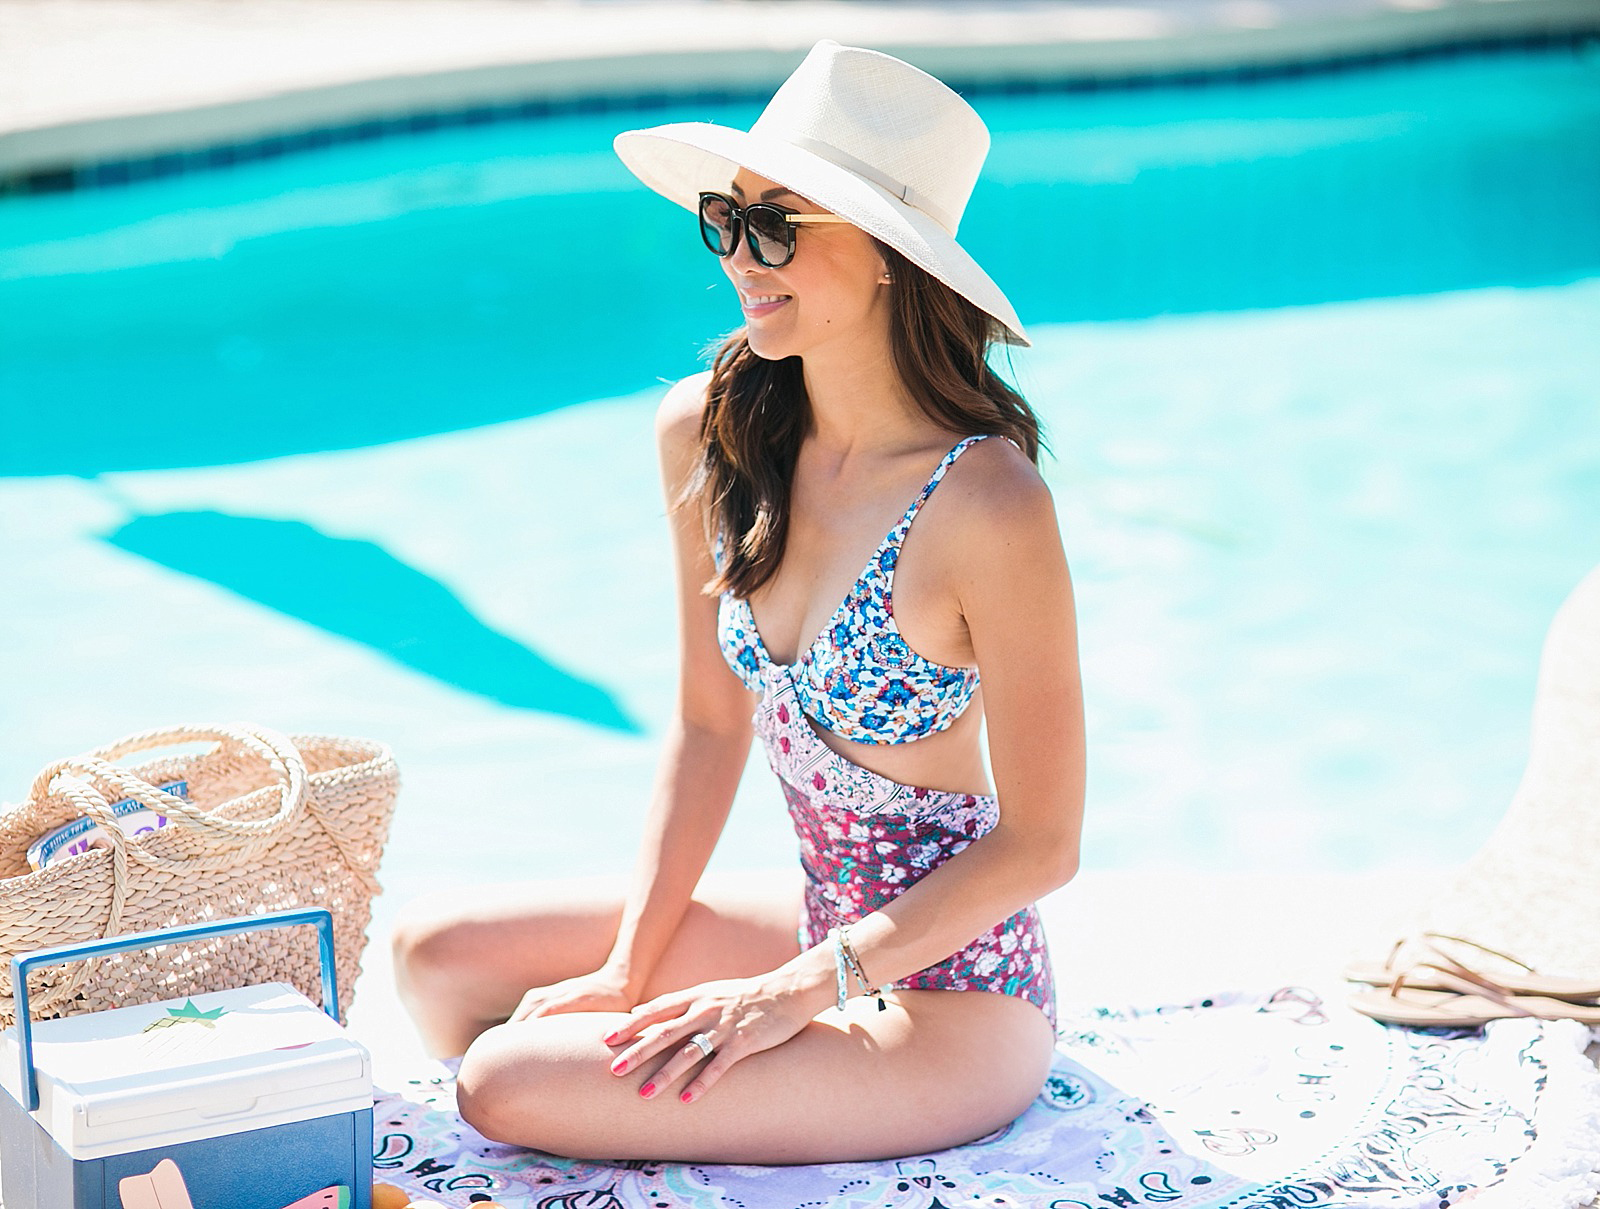 weight-watchers-pool-ready-summer-photoshoot-pool-shoot-model-lifestyle-blogger-arizona-phoenix-diana-elizabeth-blog-_00371